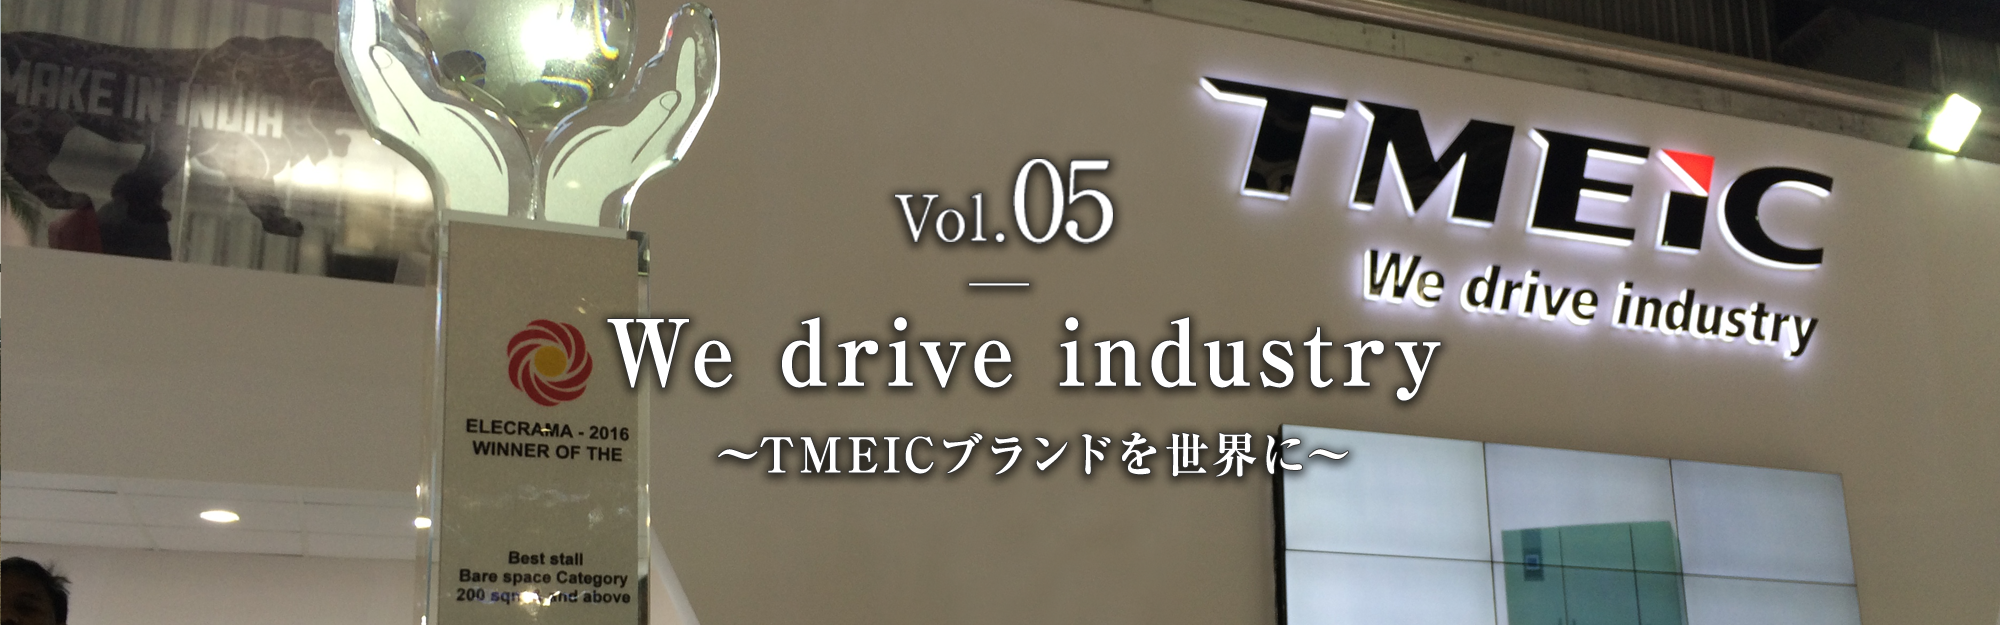 Vol.05 We drive industry ~TMEICブランドを世界に~